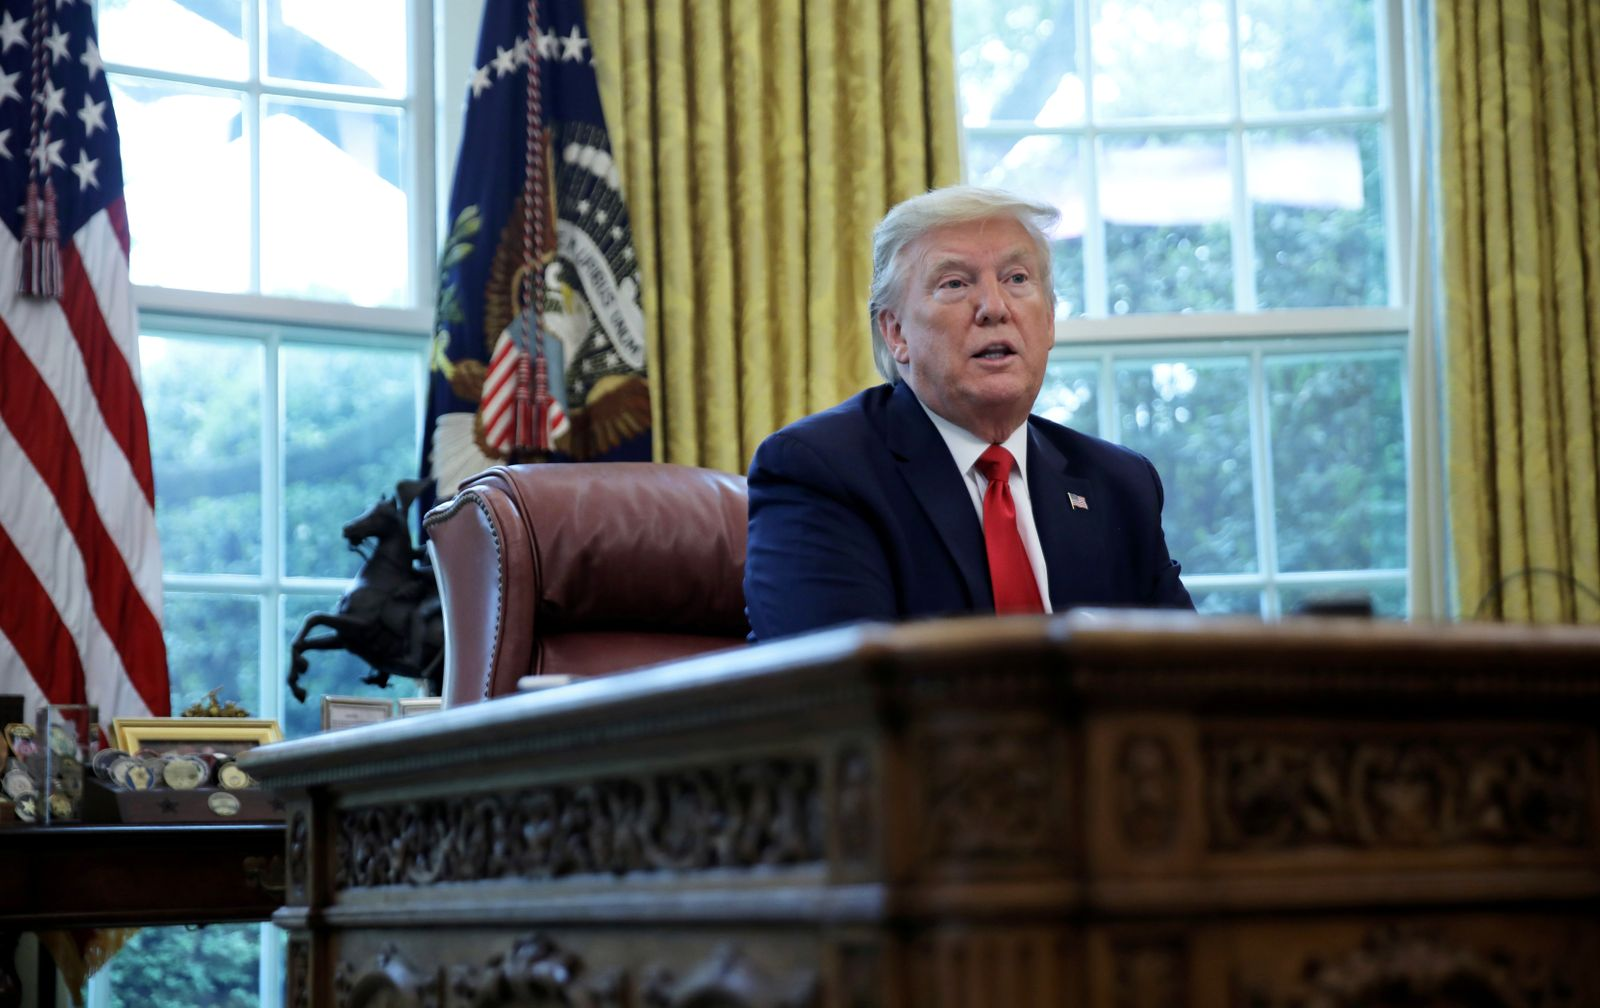 U.S. President Trump answers questions during an interview with Reuters in the Oval Office of the White House in Washington